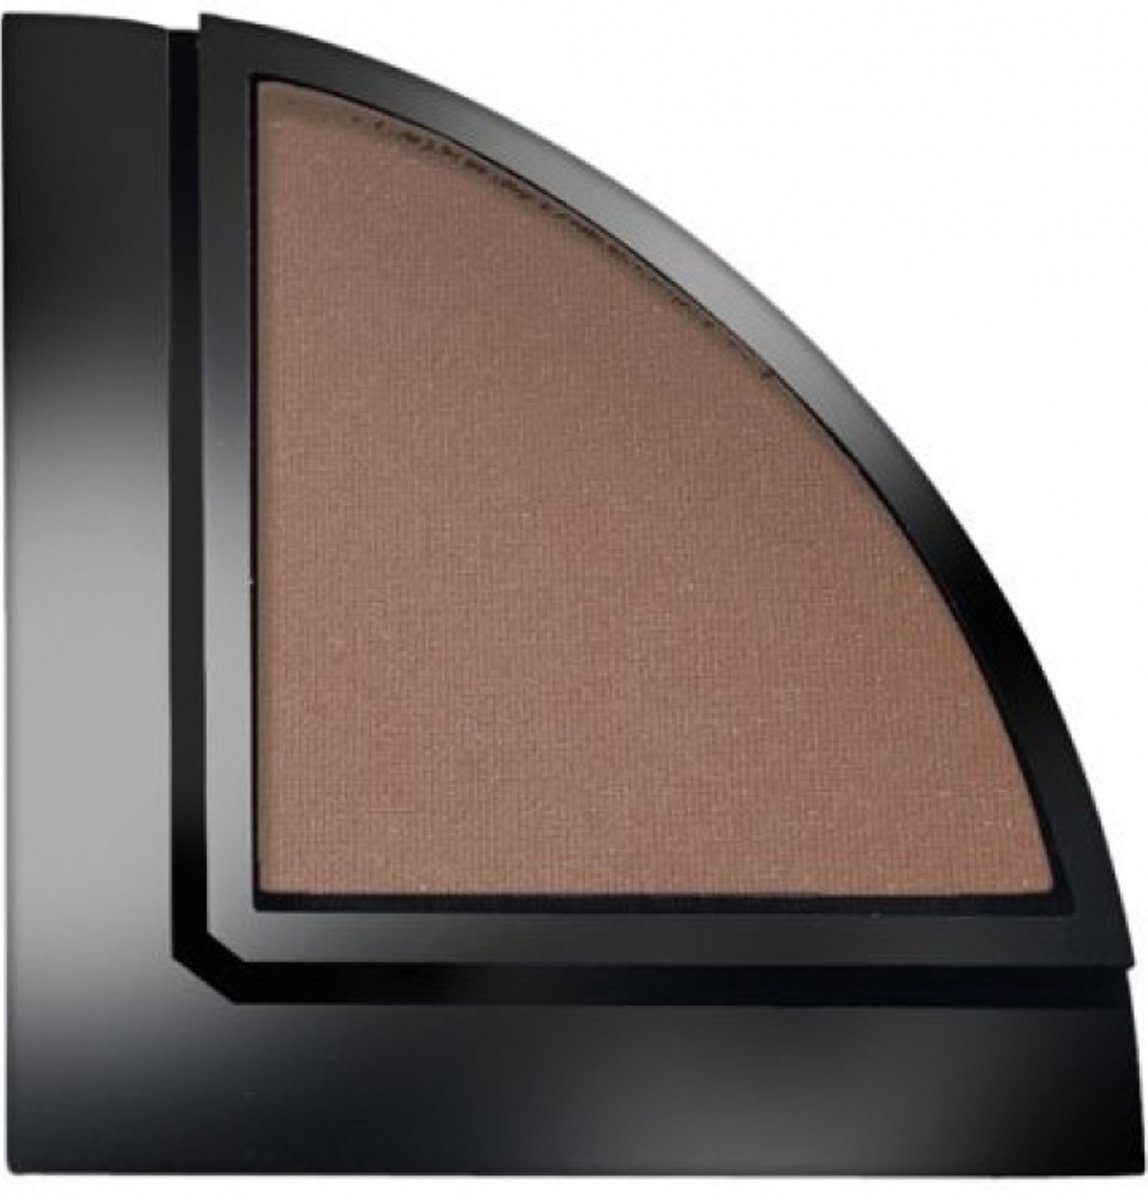 Sans Soucis Eyeshadow Re-fill Oogschaduw 1 st - 33 - Tuscan Terracotta